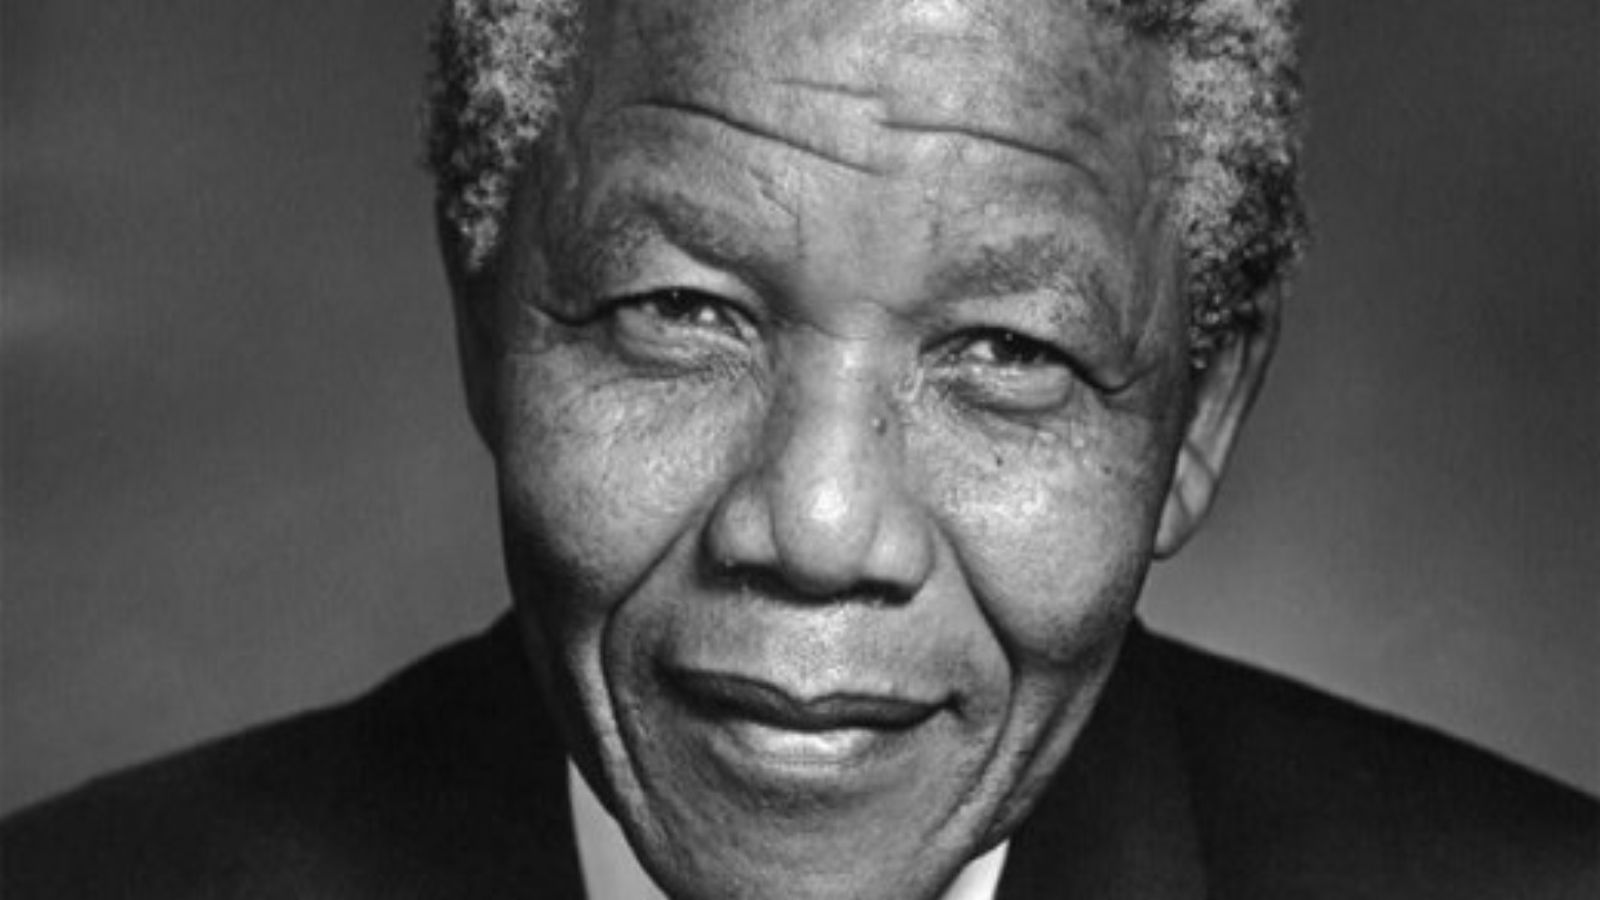 the new democracy experience of africa in the inauguration speech of nelson mandela Nelson mandela's inaugural address  as the first president of a united,  democratic, non-racial and non-sexist south africa, to lead our country.